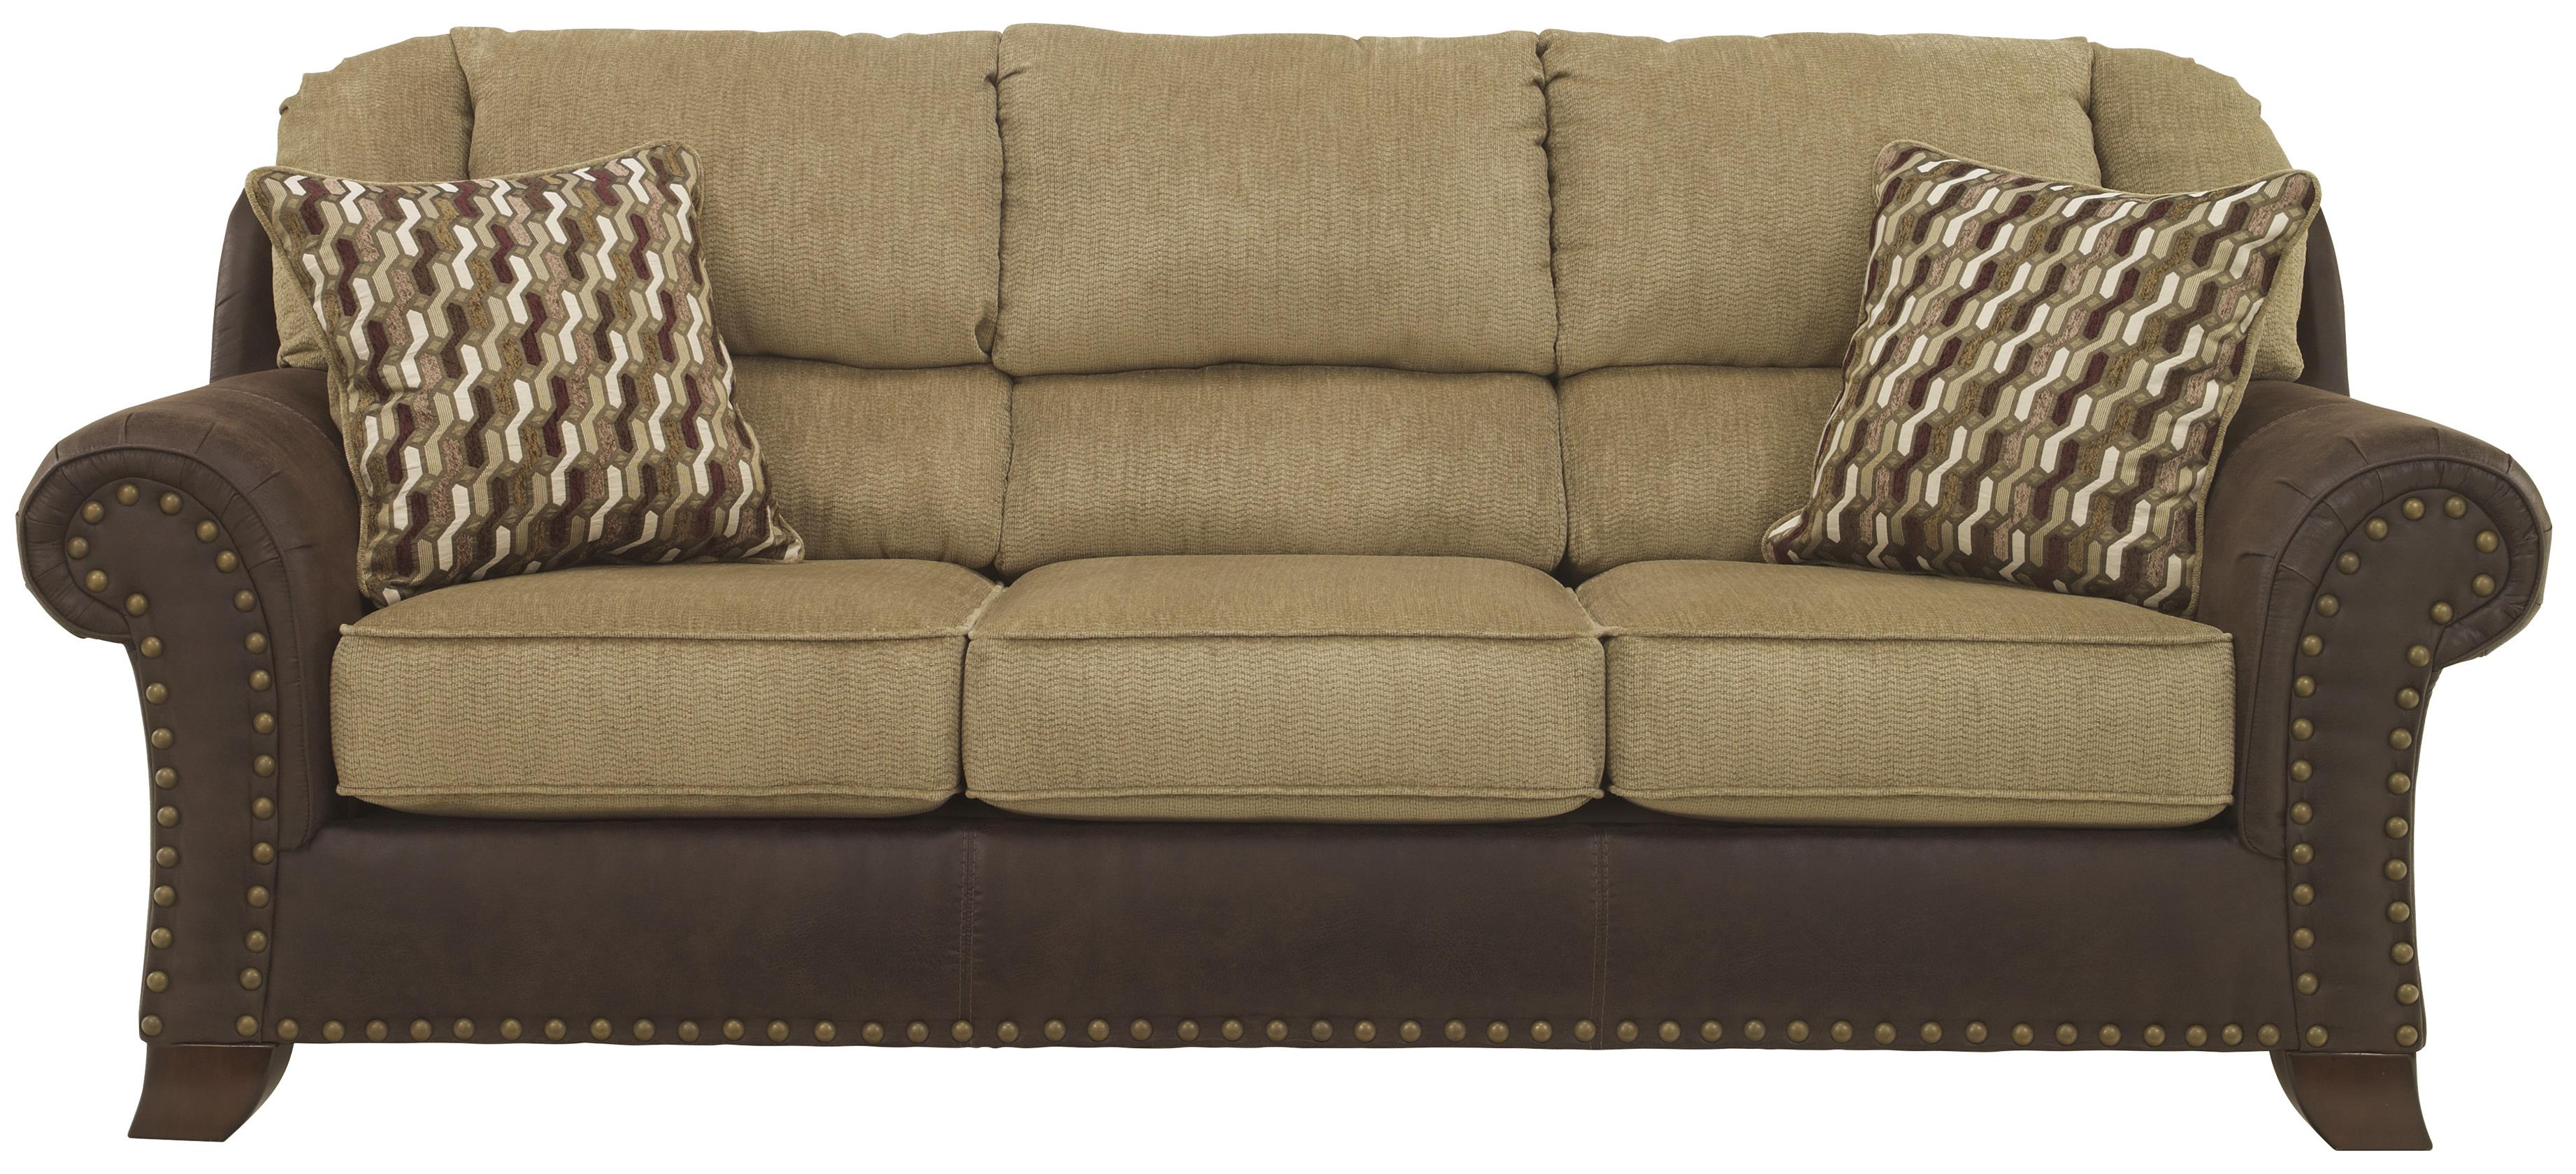 Accent Chairs To Go With Brown Leather Sofa Vandive Two Tone Sofa With Chenille Fabric Faux Leather Upholstery By Benchcraft At Household Furniture